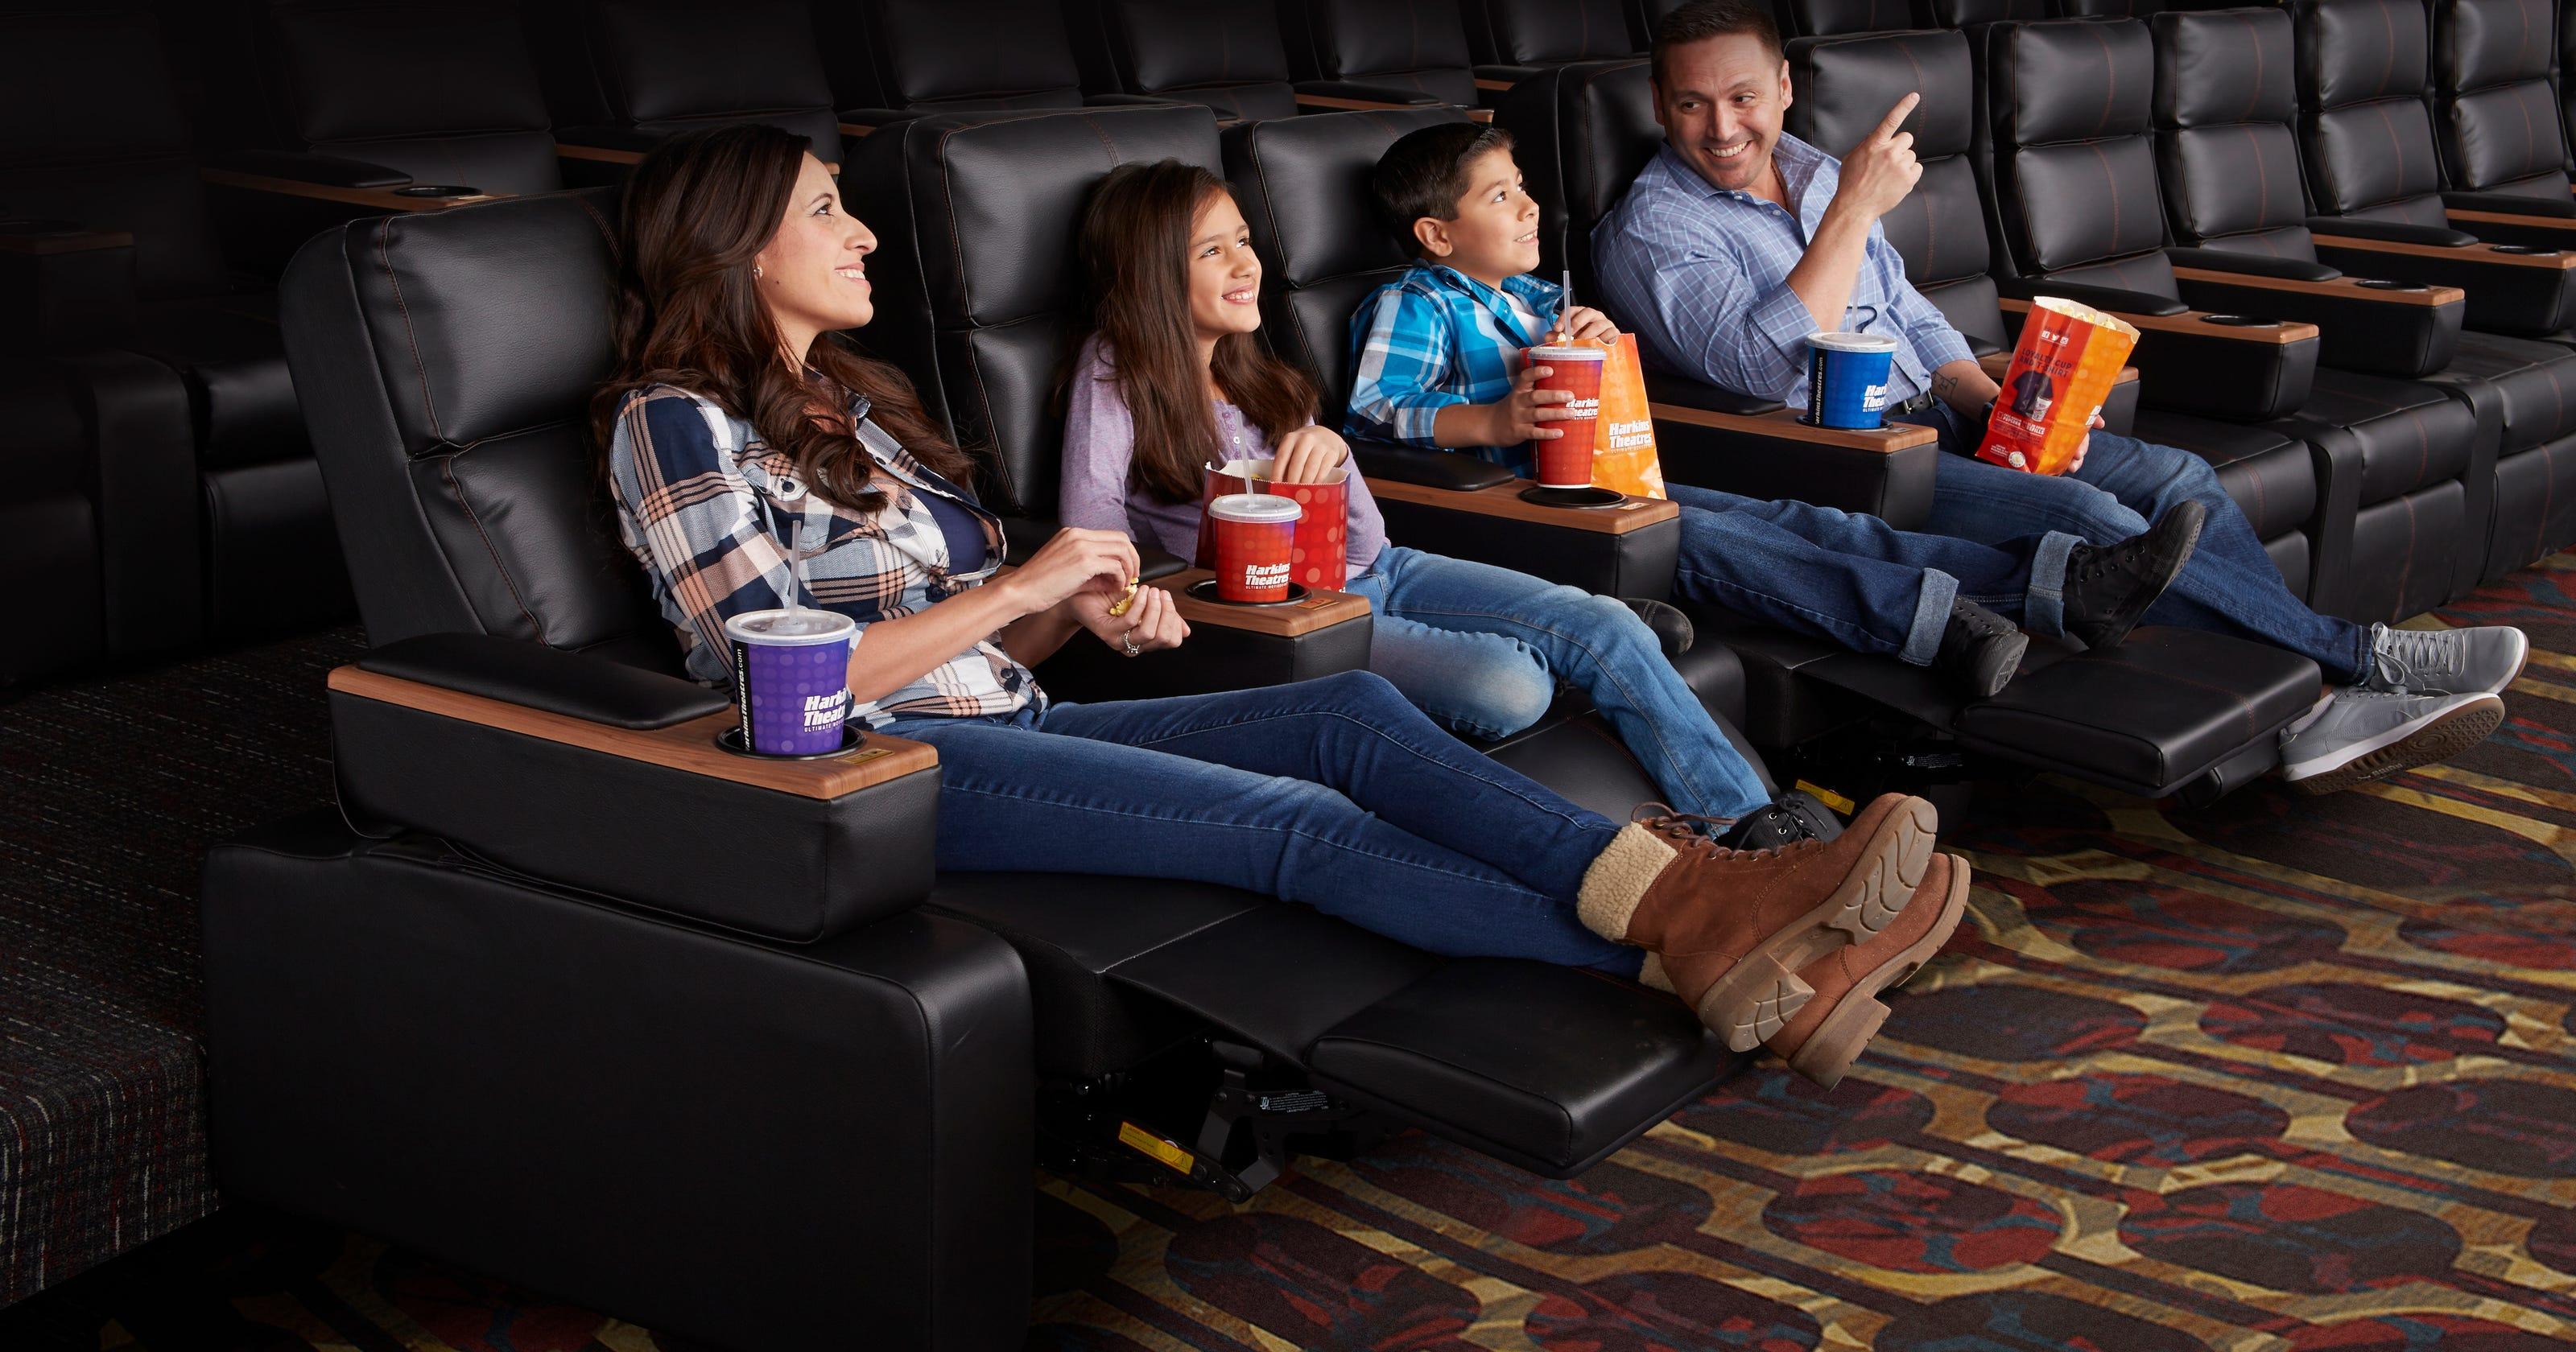 Hottest trend at the movies? Luxury theaters wine and dine